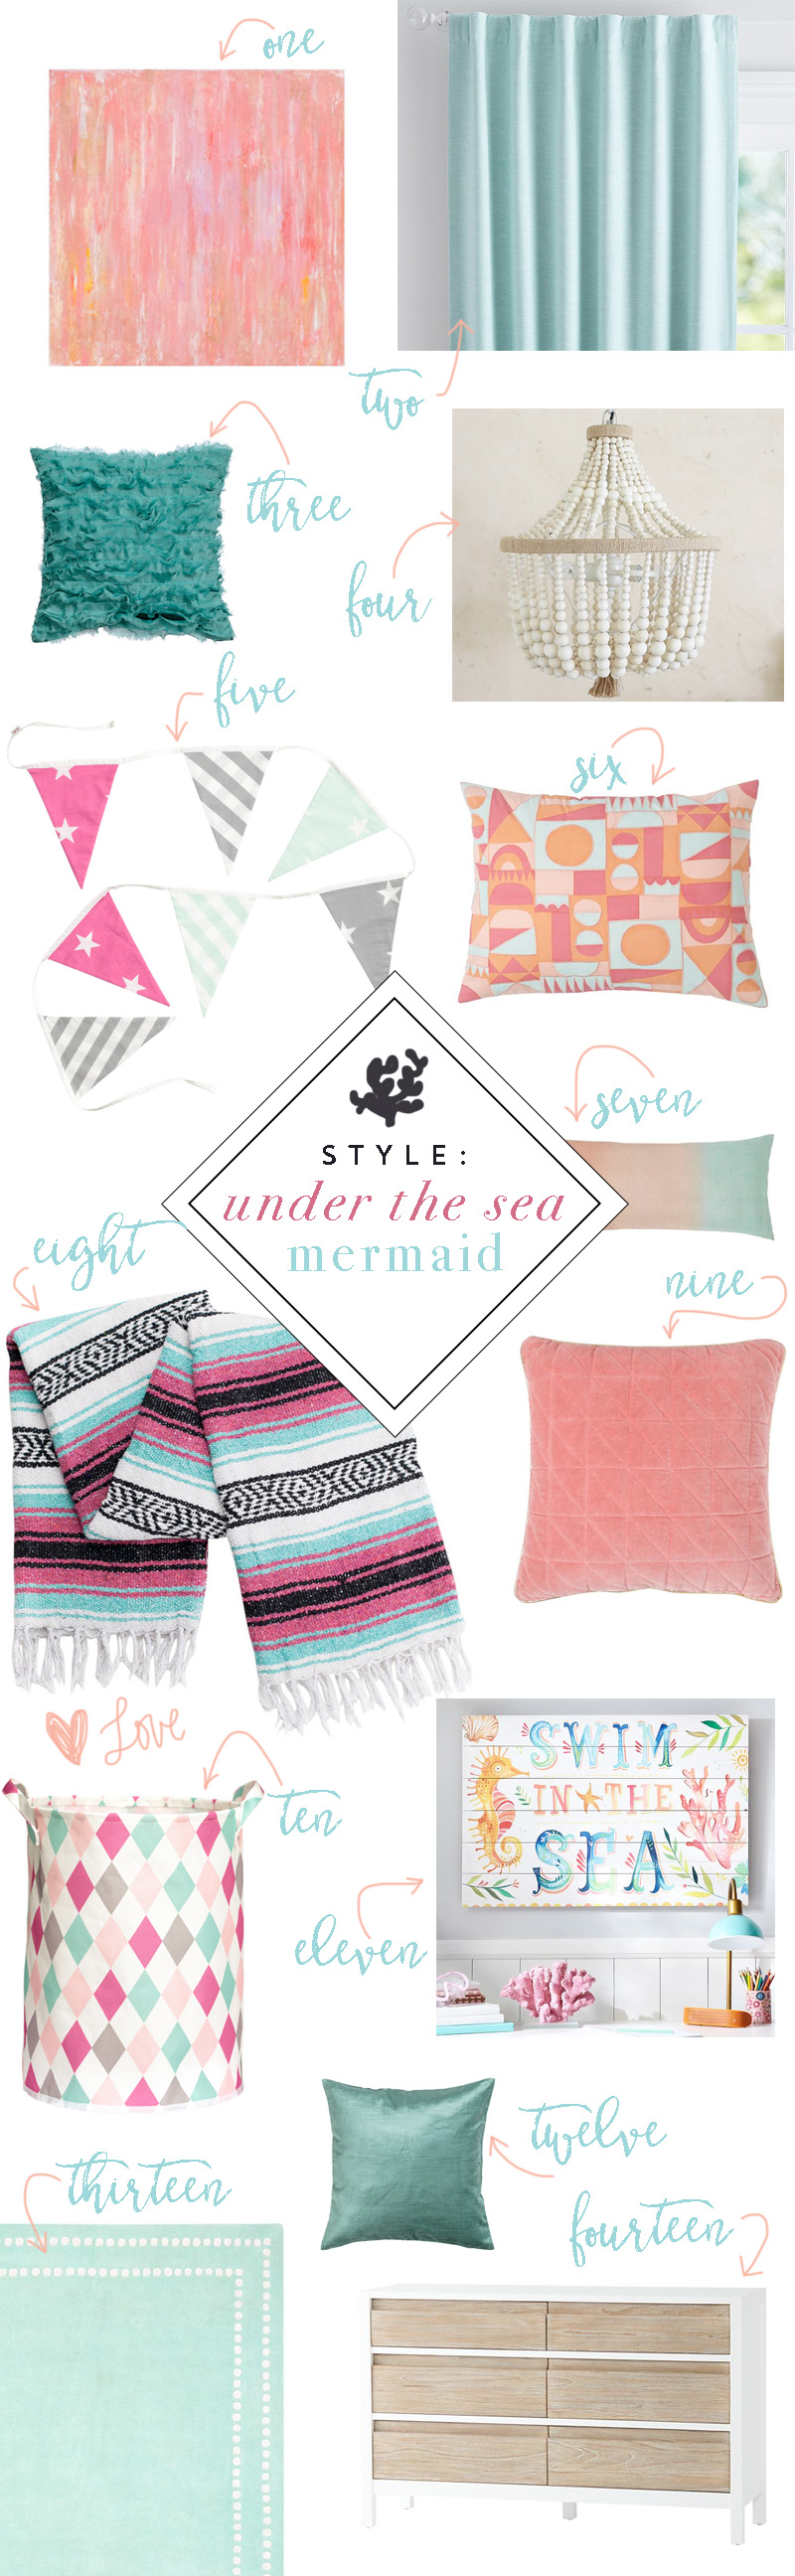 mermaid-room-inspiration-by-jomygoodness.jpg